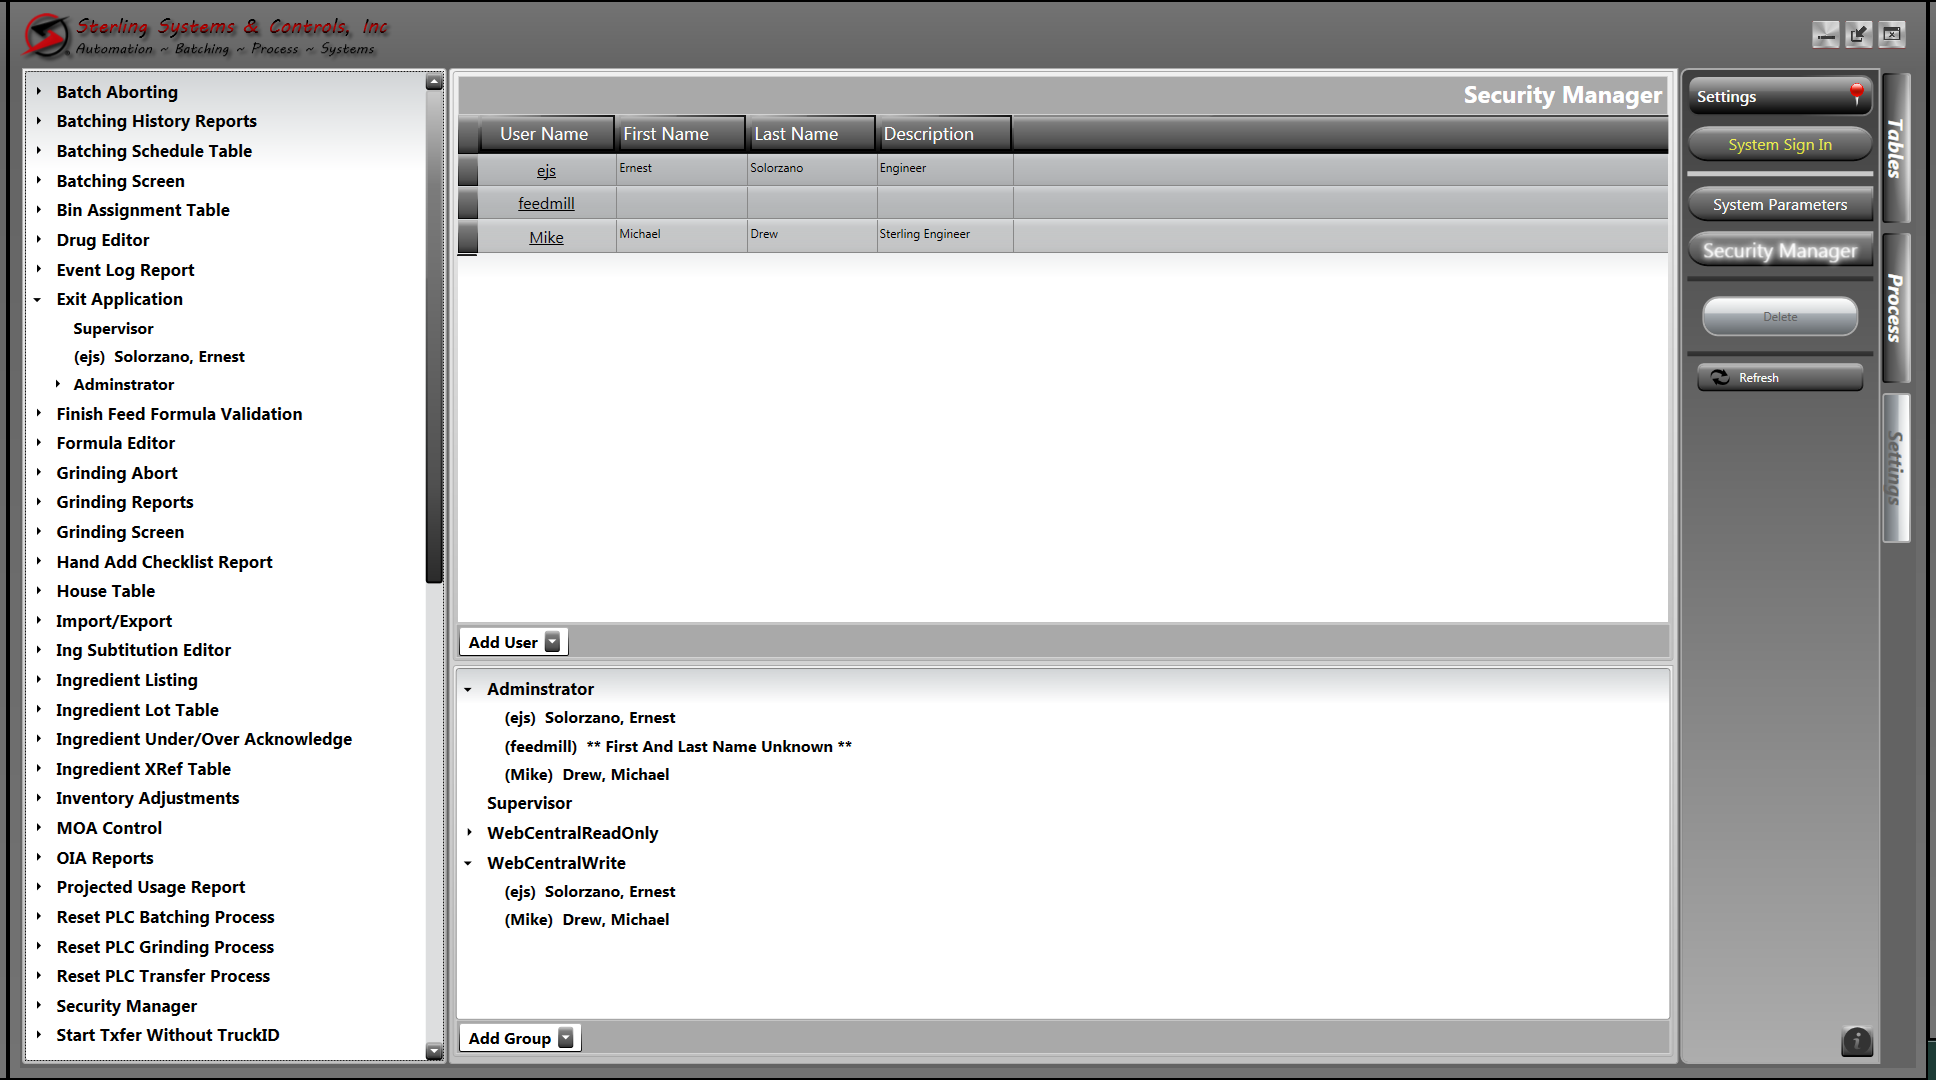 SECURITY MANAGER WEBCENTRAL SCREEN